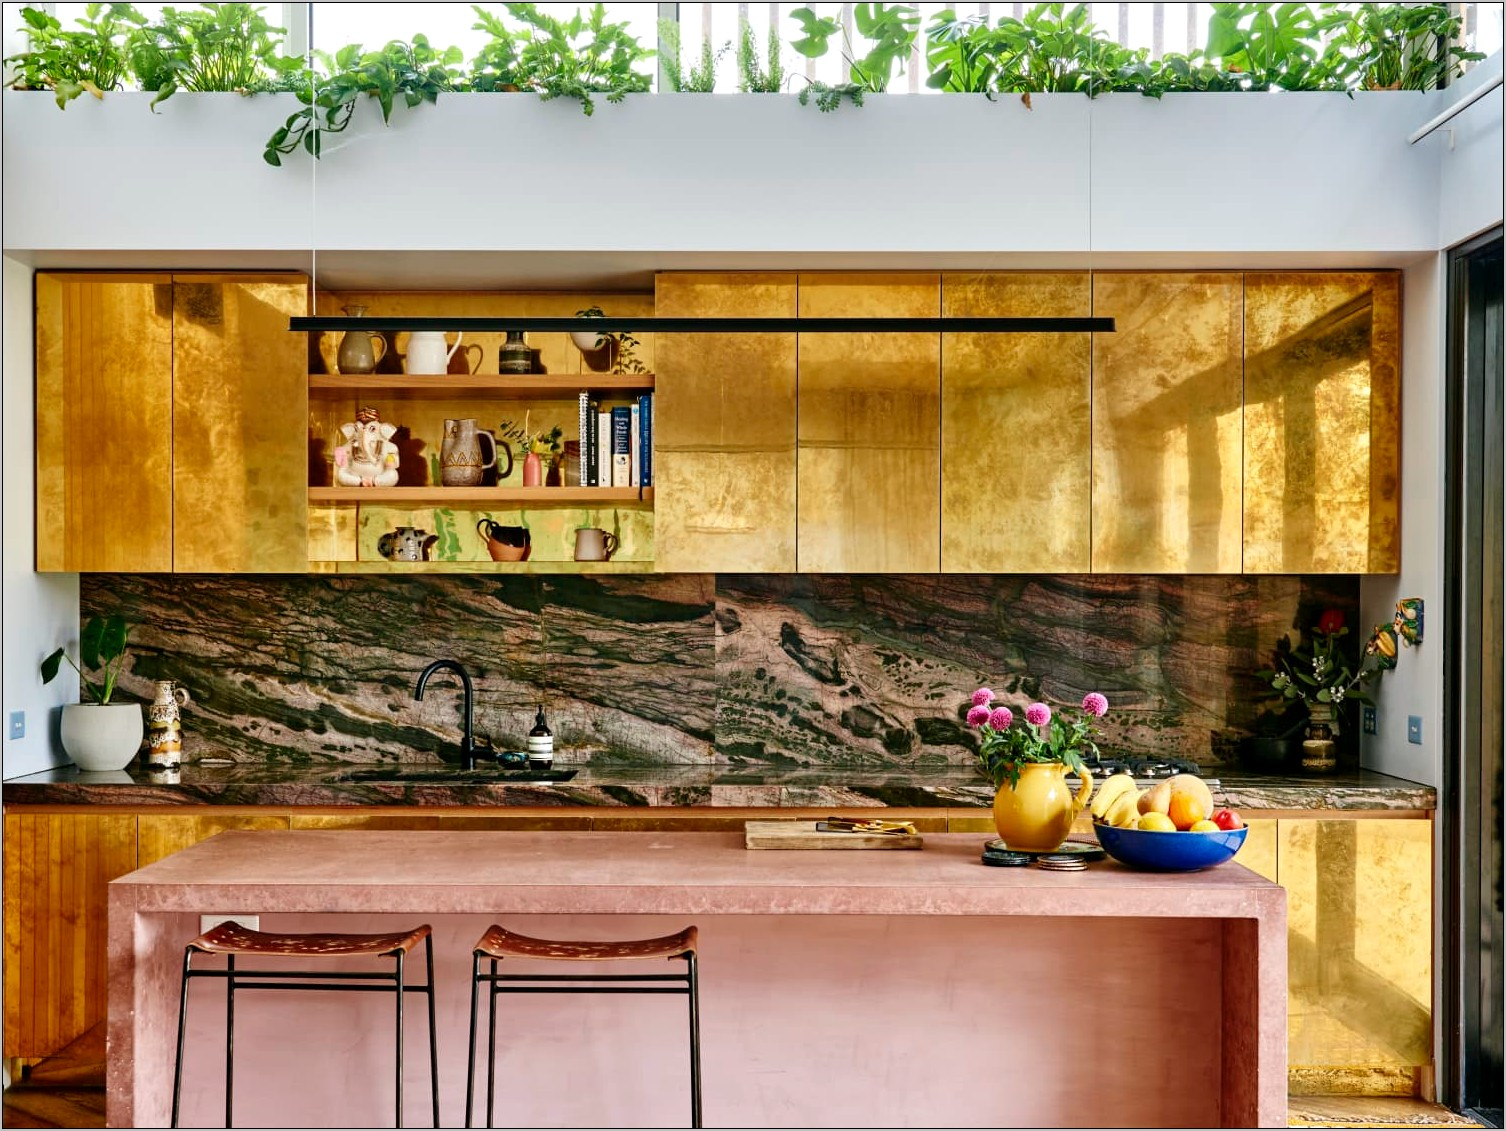 Future Home Kitchen And Furniture Decor Limited